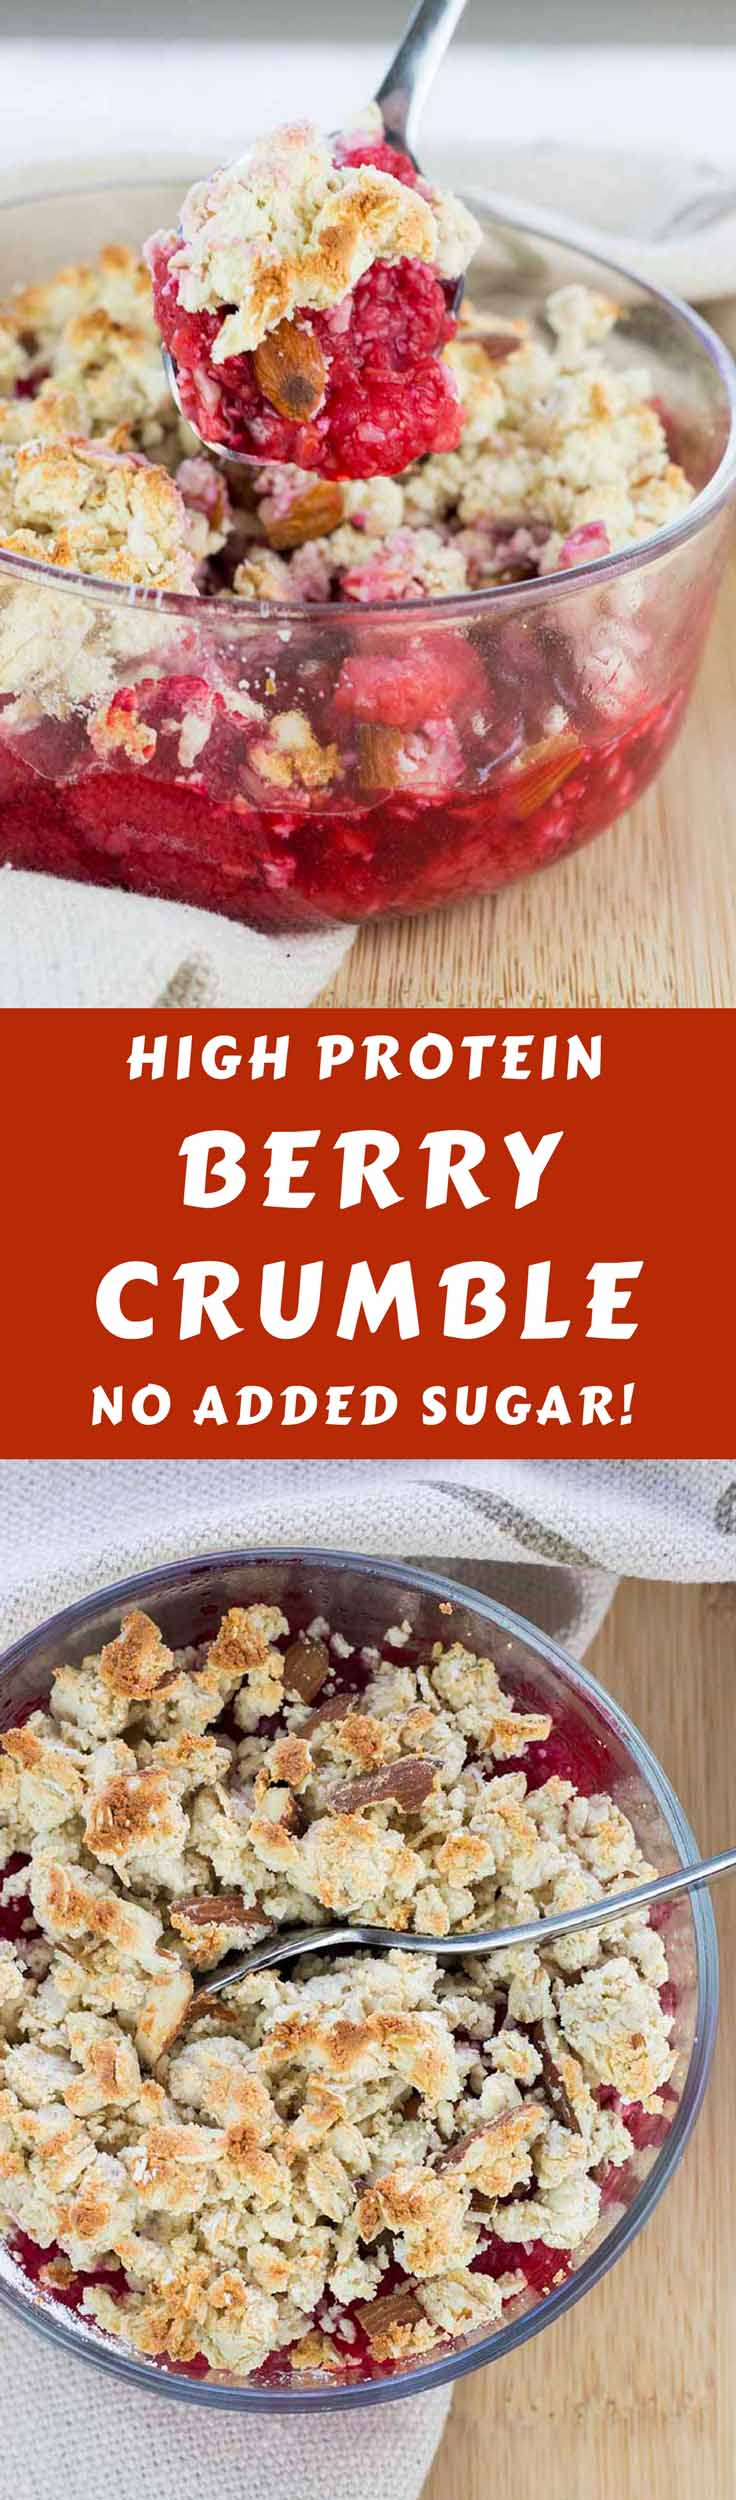 Have cake for breakfast (or any other time of day) with this tasty High Protein Berry Crumble! It's high protein, gluten free, and contains no added sugar. It's a perfect healthy breakfast, healthy dessert, or healthy snack. #healthyeating #healthyrecipes #lowcarbcake #diabetesdiet #diabetesrecipes #diabeticdiet  #diabeticfood #diabeticrecipe #diabeticfriendly #lowcarb #lowcarbdiet #lowcarbdessert #lowcarbbreakfast